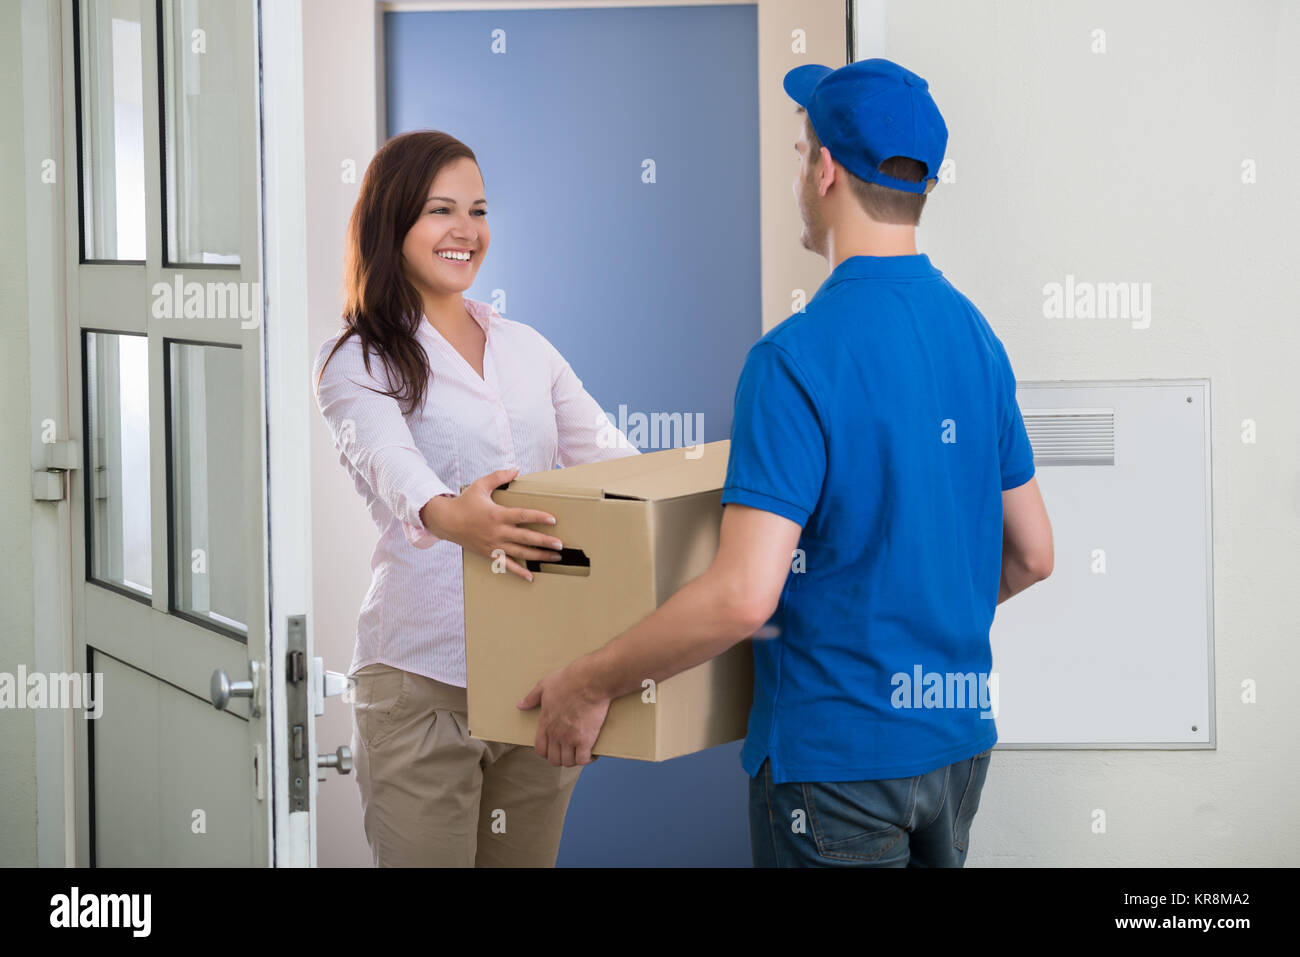 Delivery Man Gives Package To Woman - Stock Image